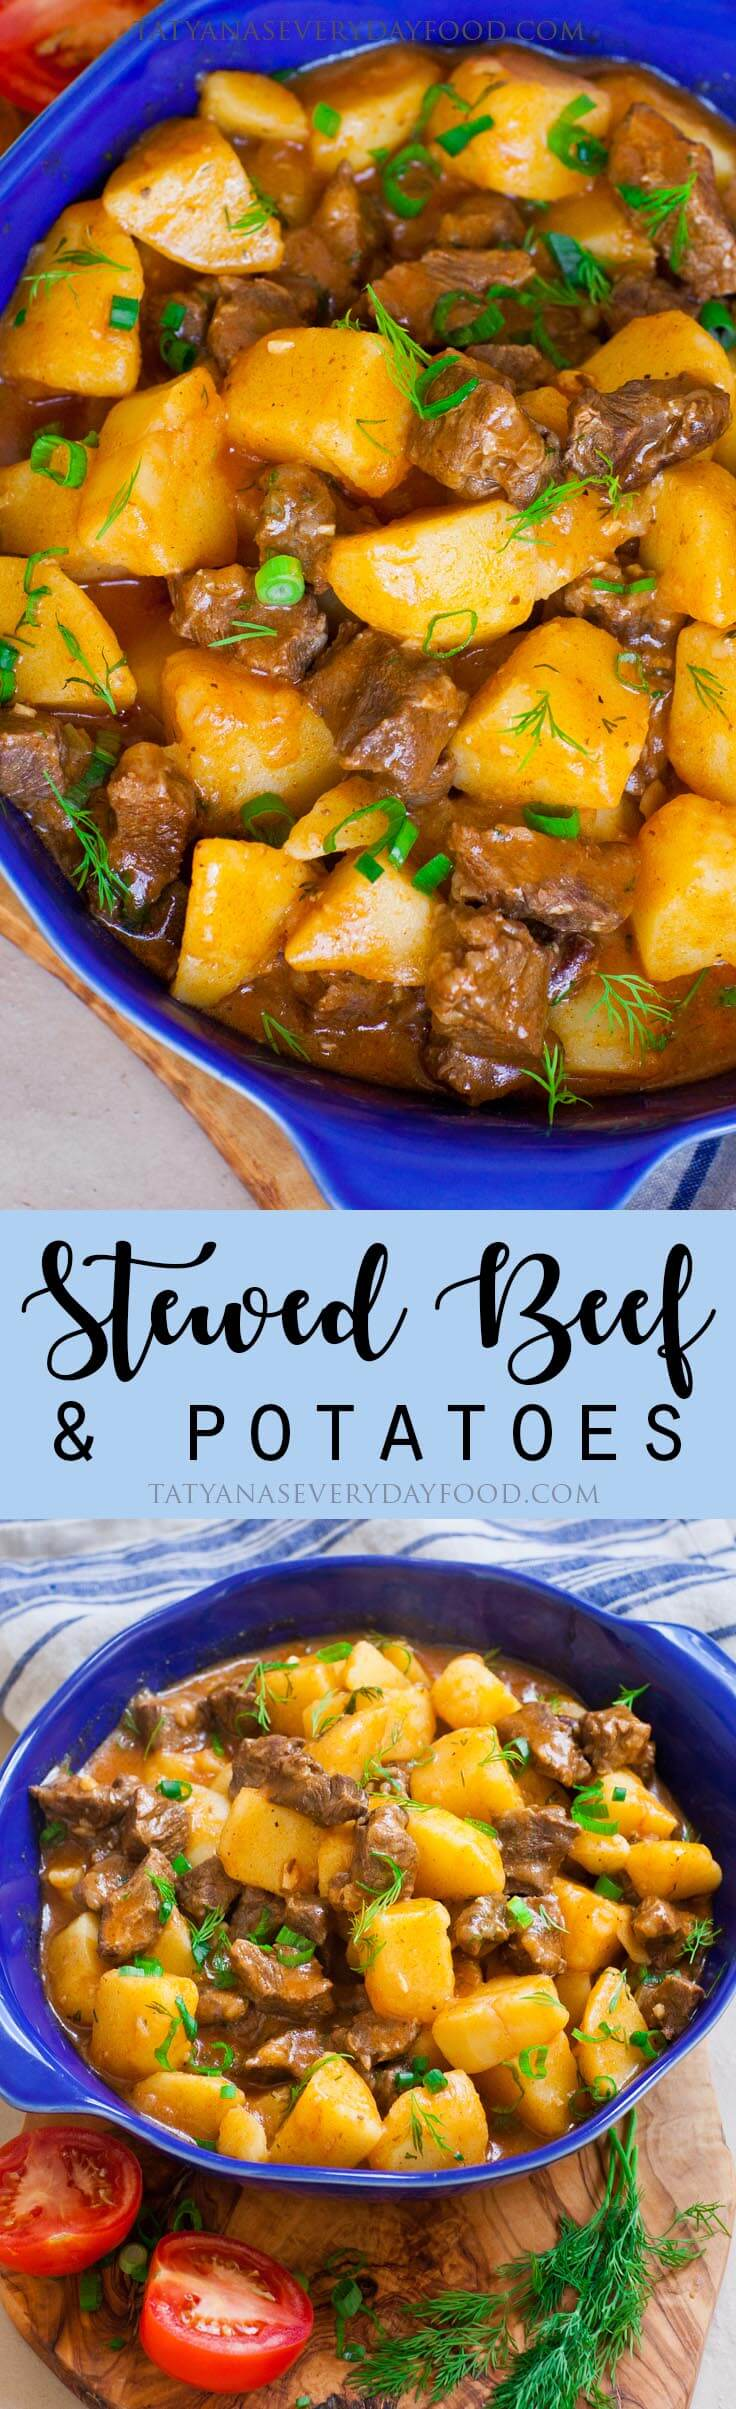 Easy Stewed Beef & Potatoes Recipe with video